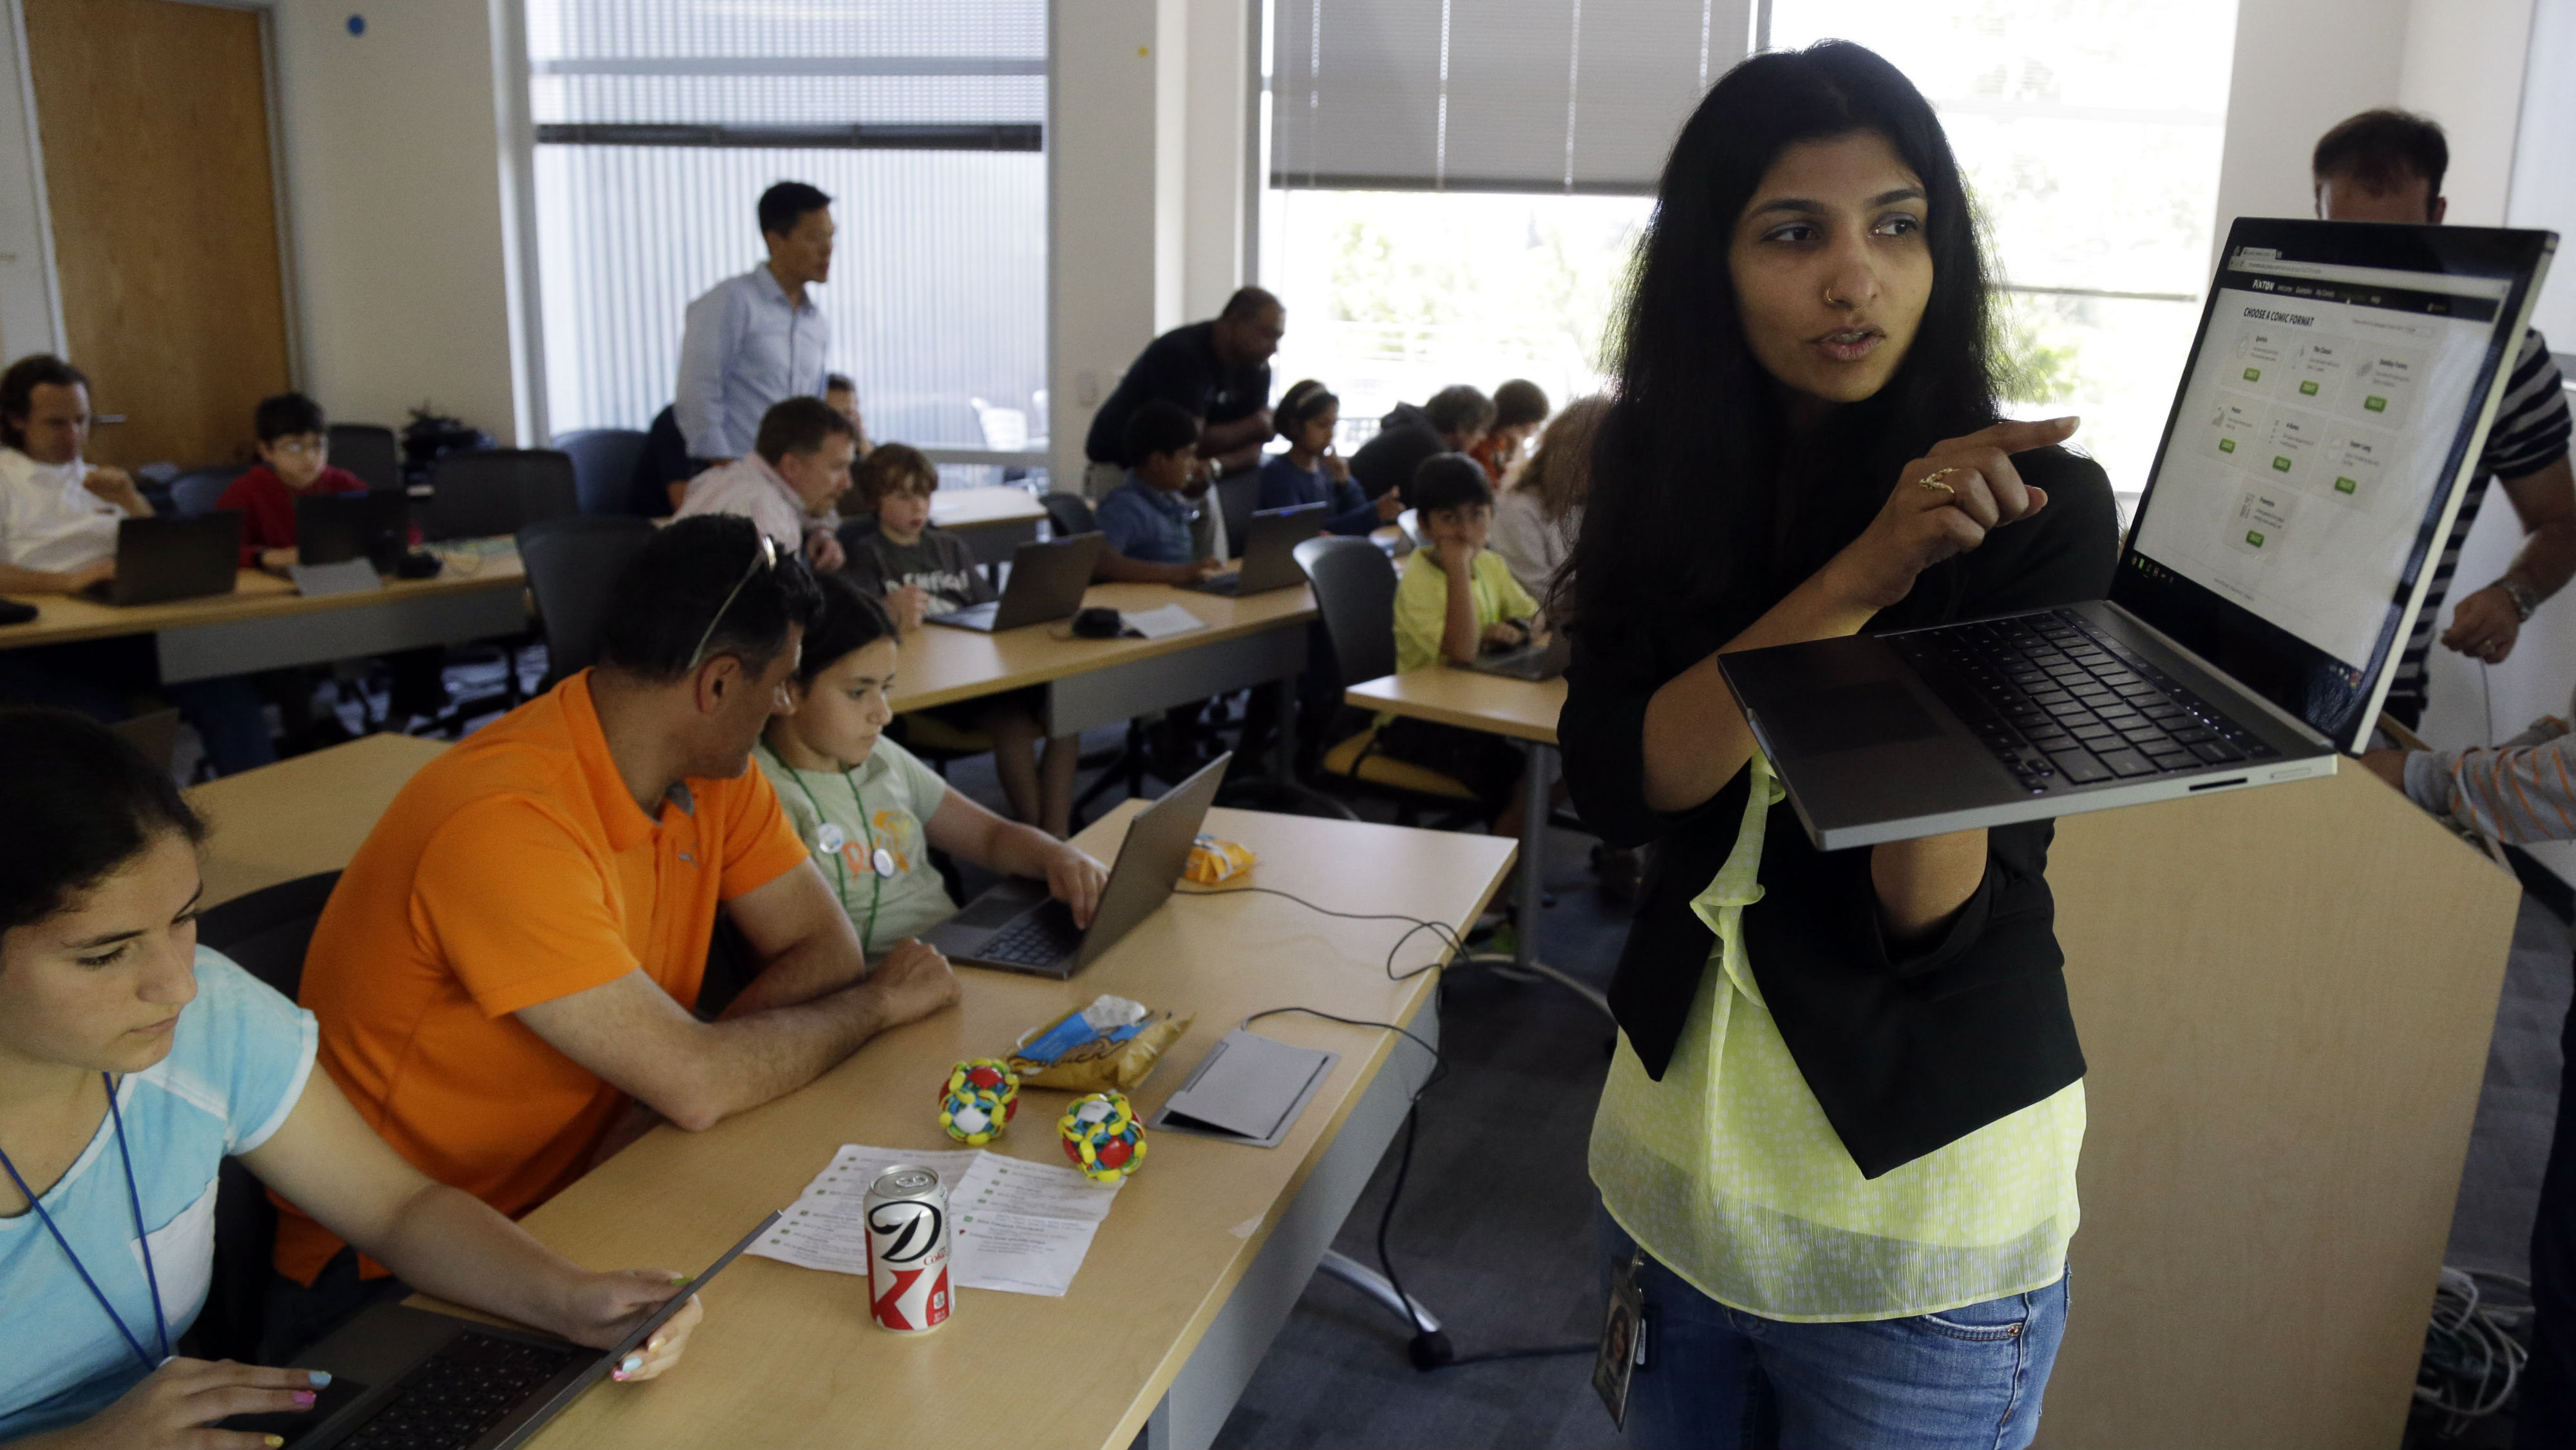 Product manager Vidya Nagarajan demonstrates the new Chrome notebook during a workshop for employees and their children at Google headquarters in Mountain View, Calif., Thursday, April 25, 2013. (AP Photo/Marcio Jose Sanchez)